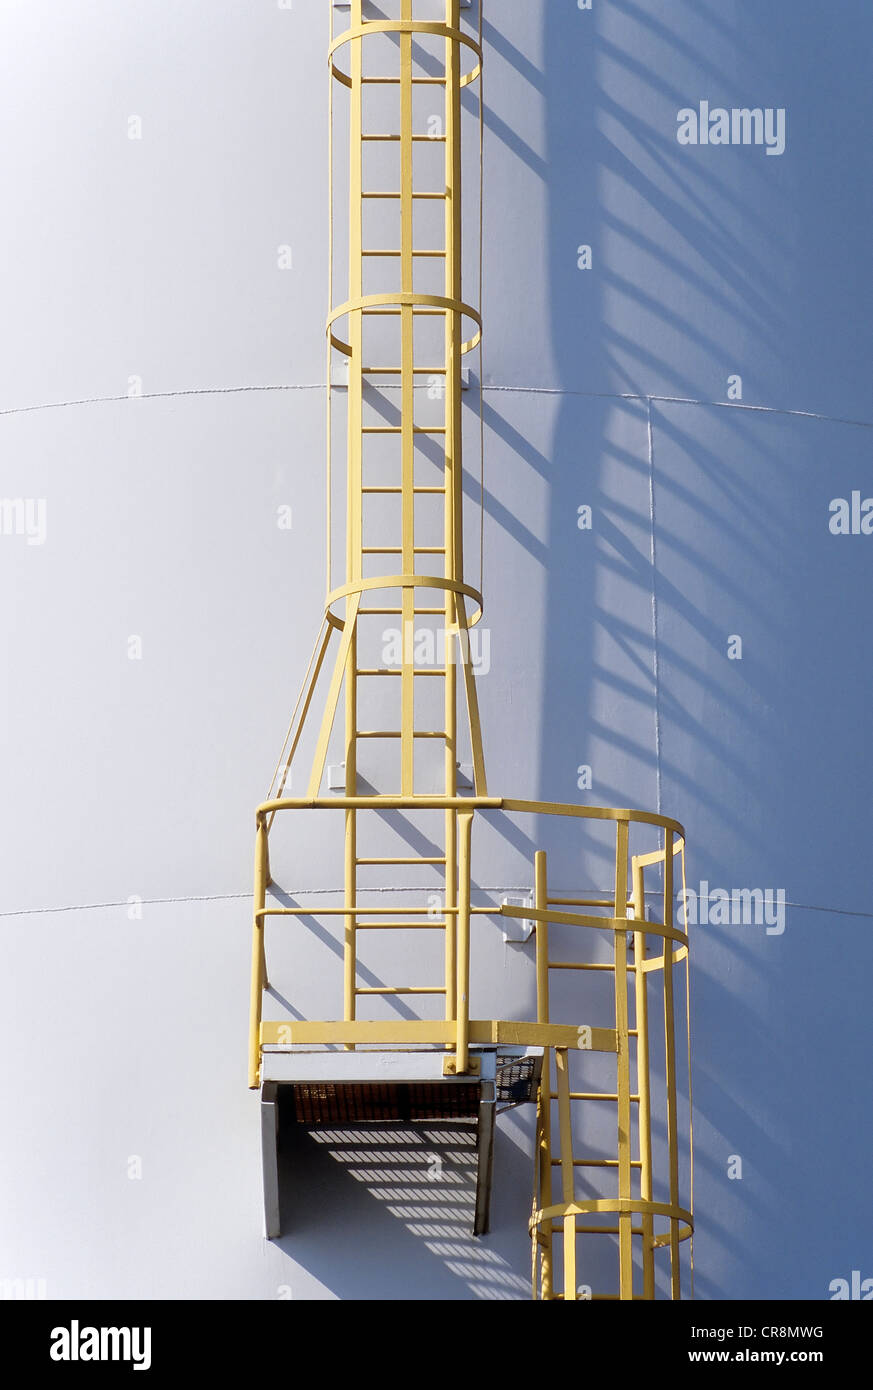 Ladder on a tank containing hydrochloric acid, Chempark Krefeld-Uerdingen industrial park, formerly known as Bayer - Stock Image